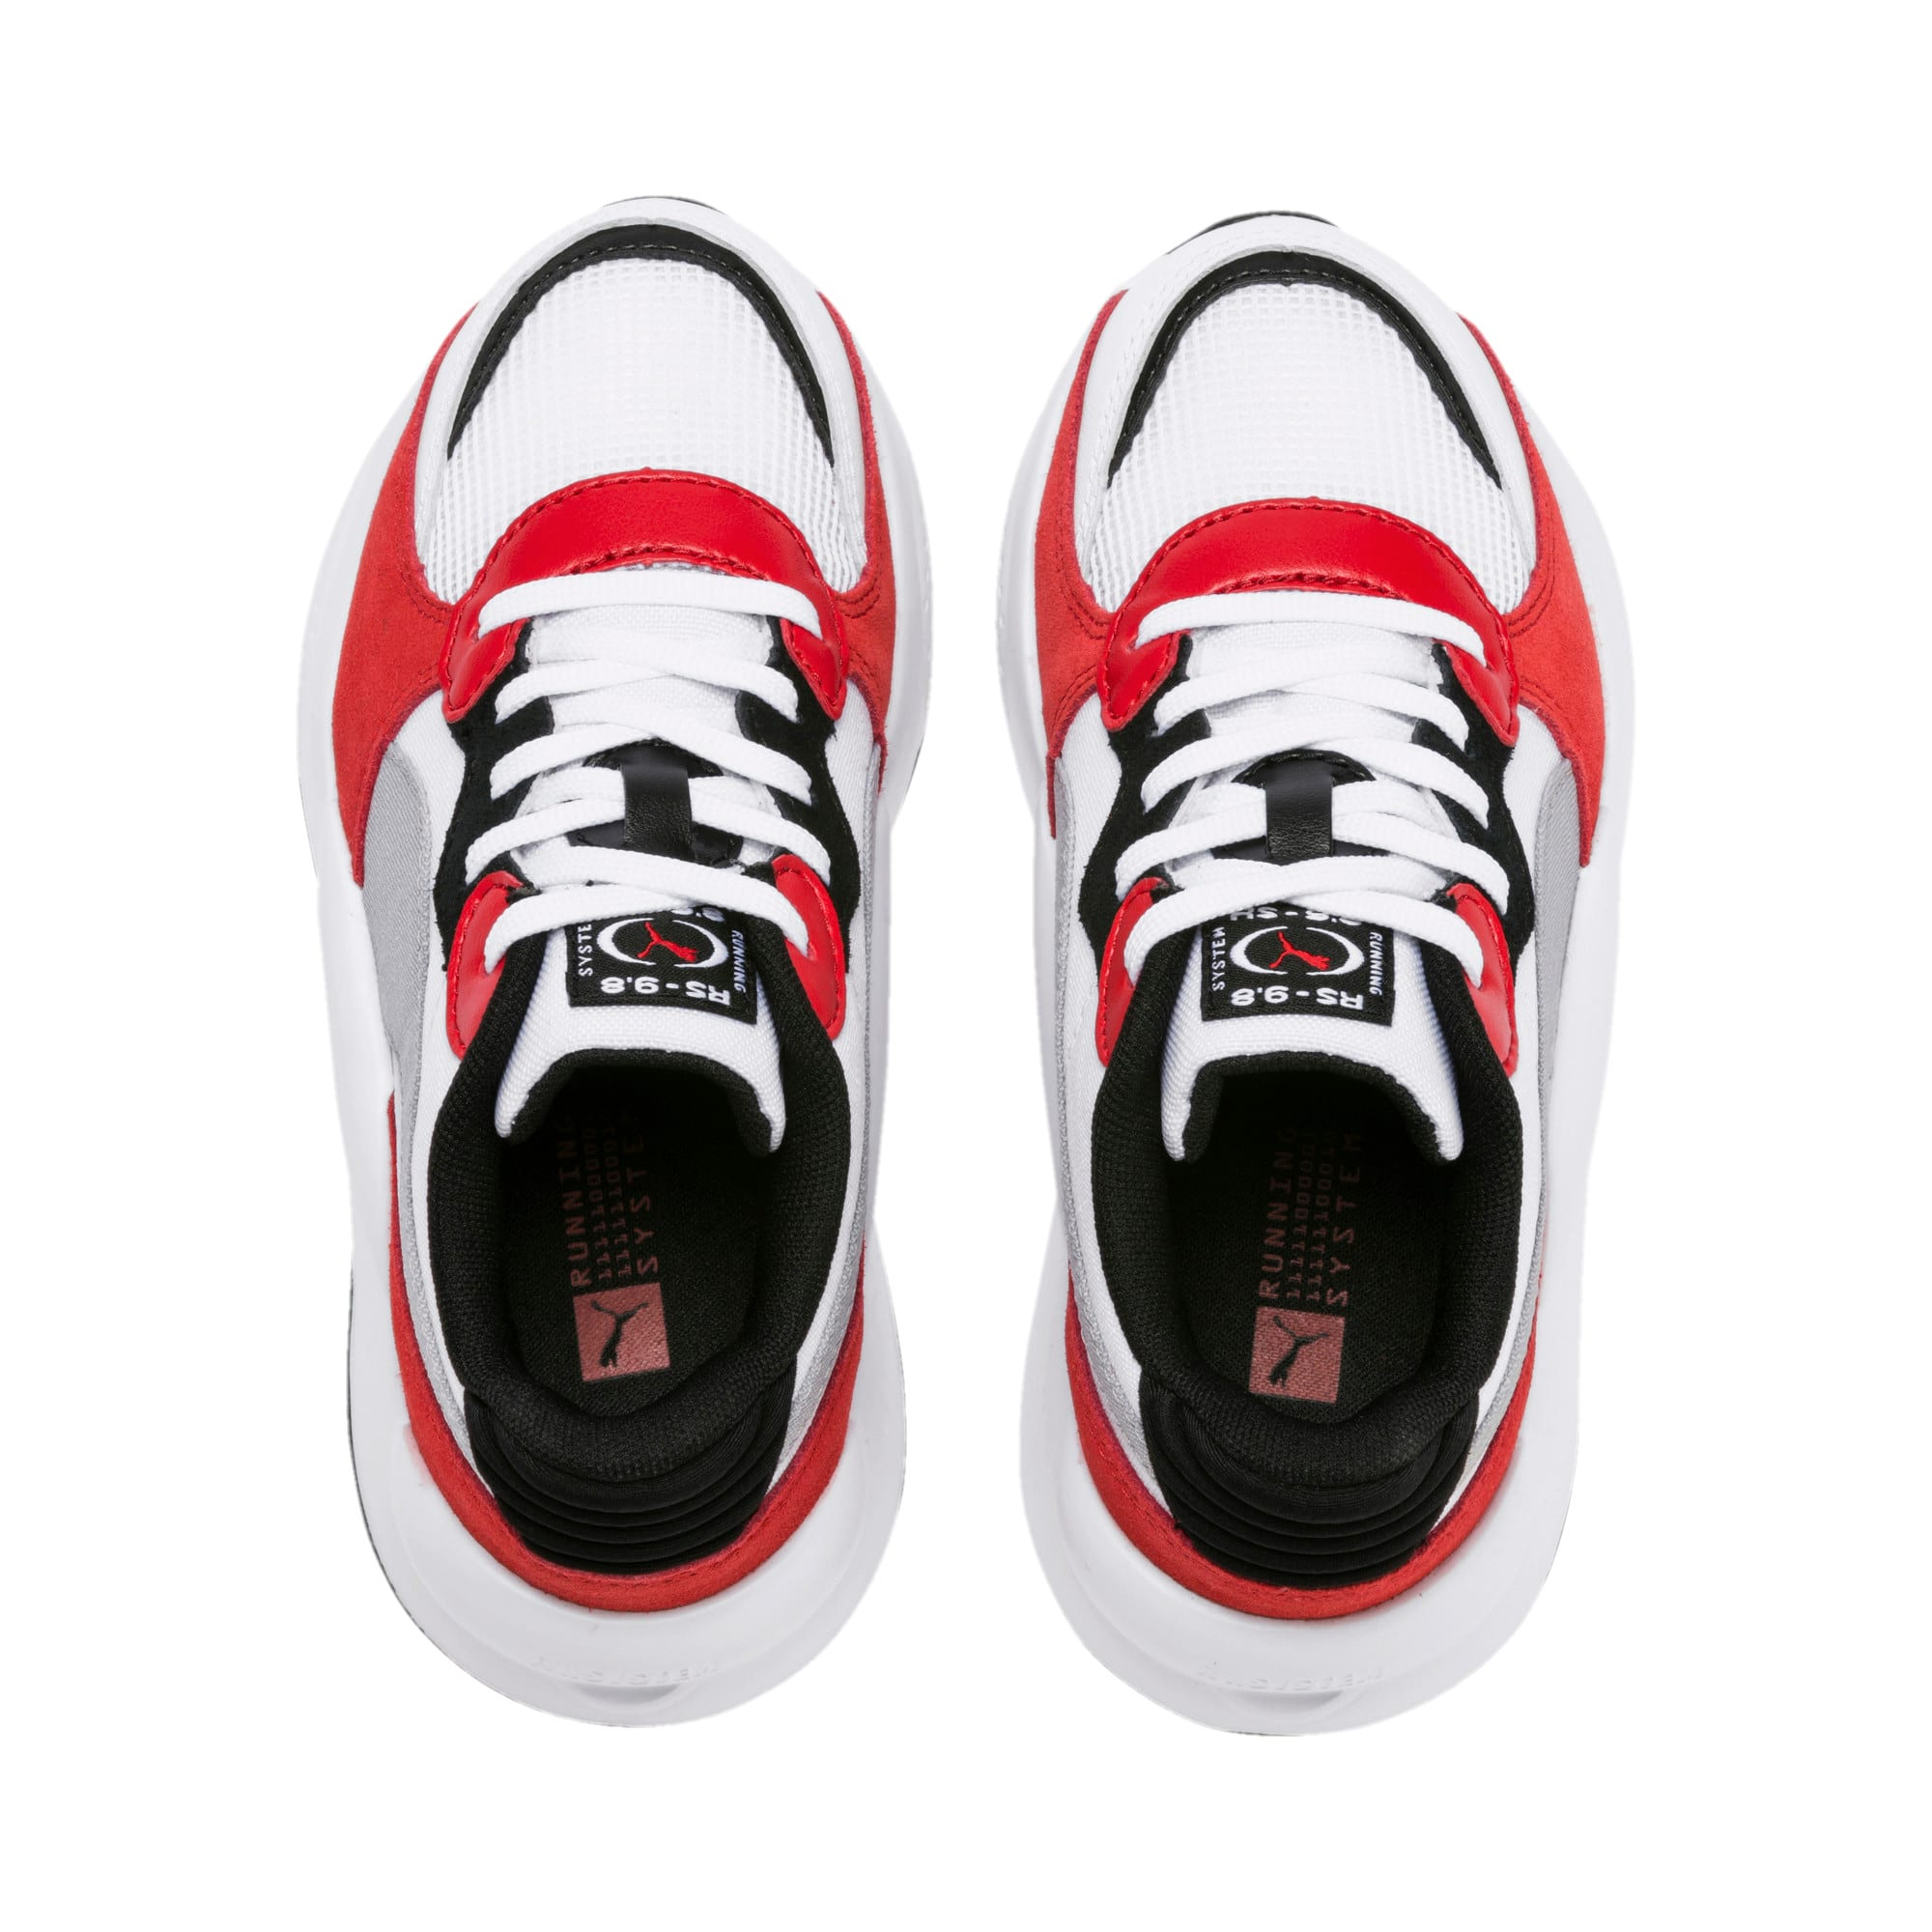 Thumbnail 6 of RS 9.8 Space Kids' Trainers, Puma White-High Risk Red, medium